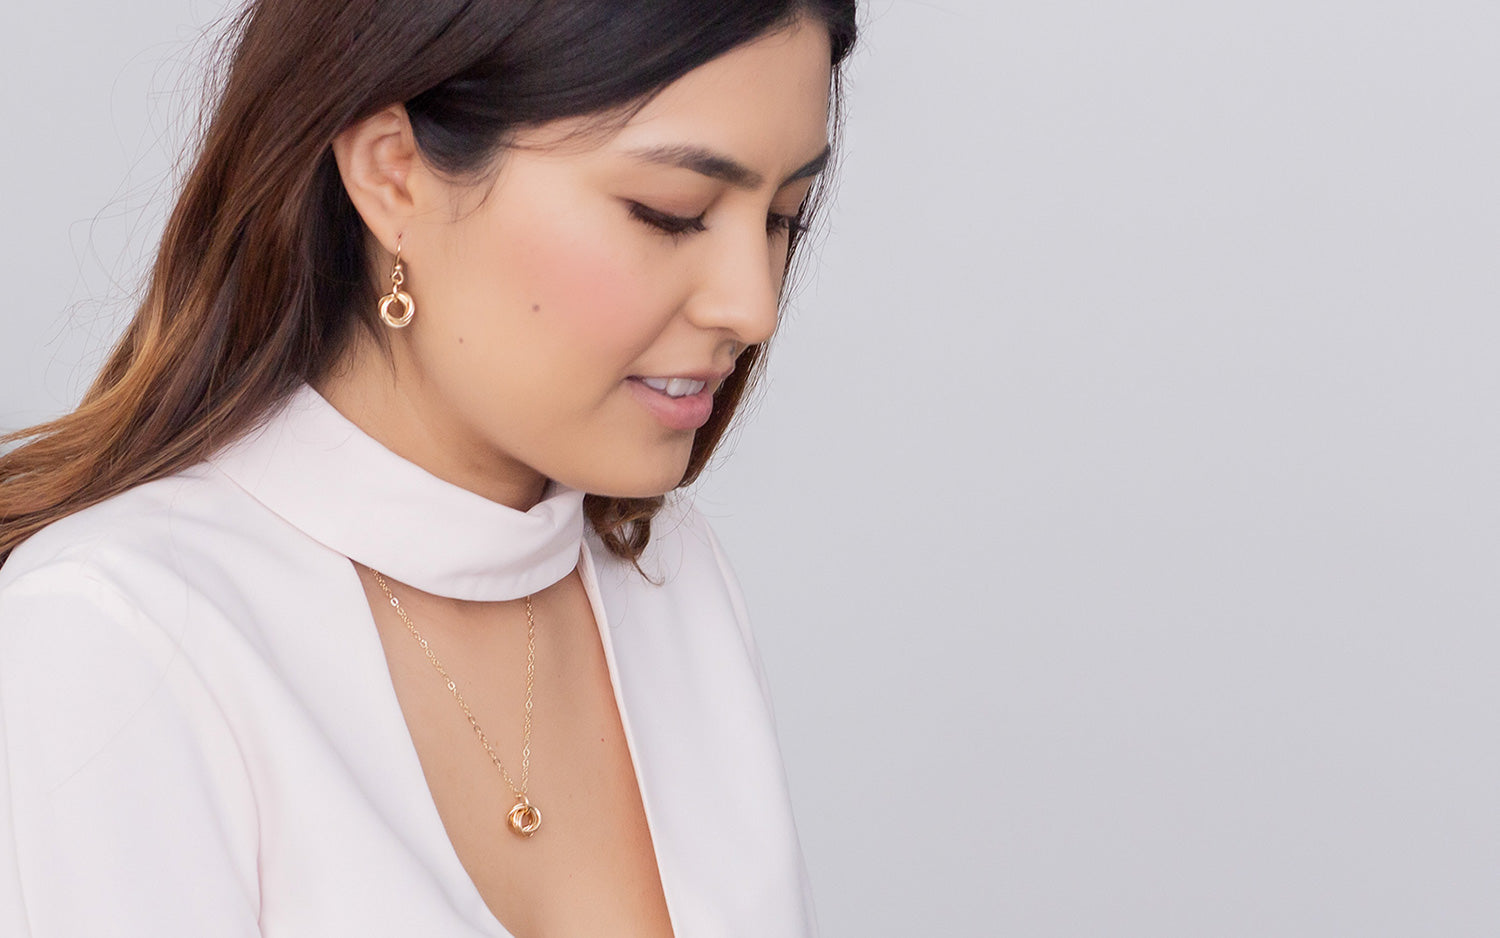 Tahmi's handmade jewelry is perfect for the minimalist wardrobe.  It's made one piece at a time that puts the finishing touch on any capsule outfit, from casual to dressy minimalist outfit.